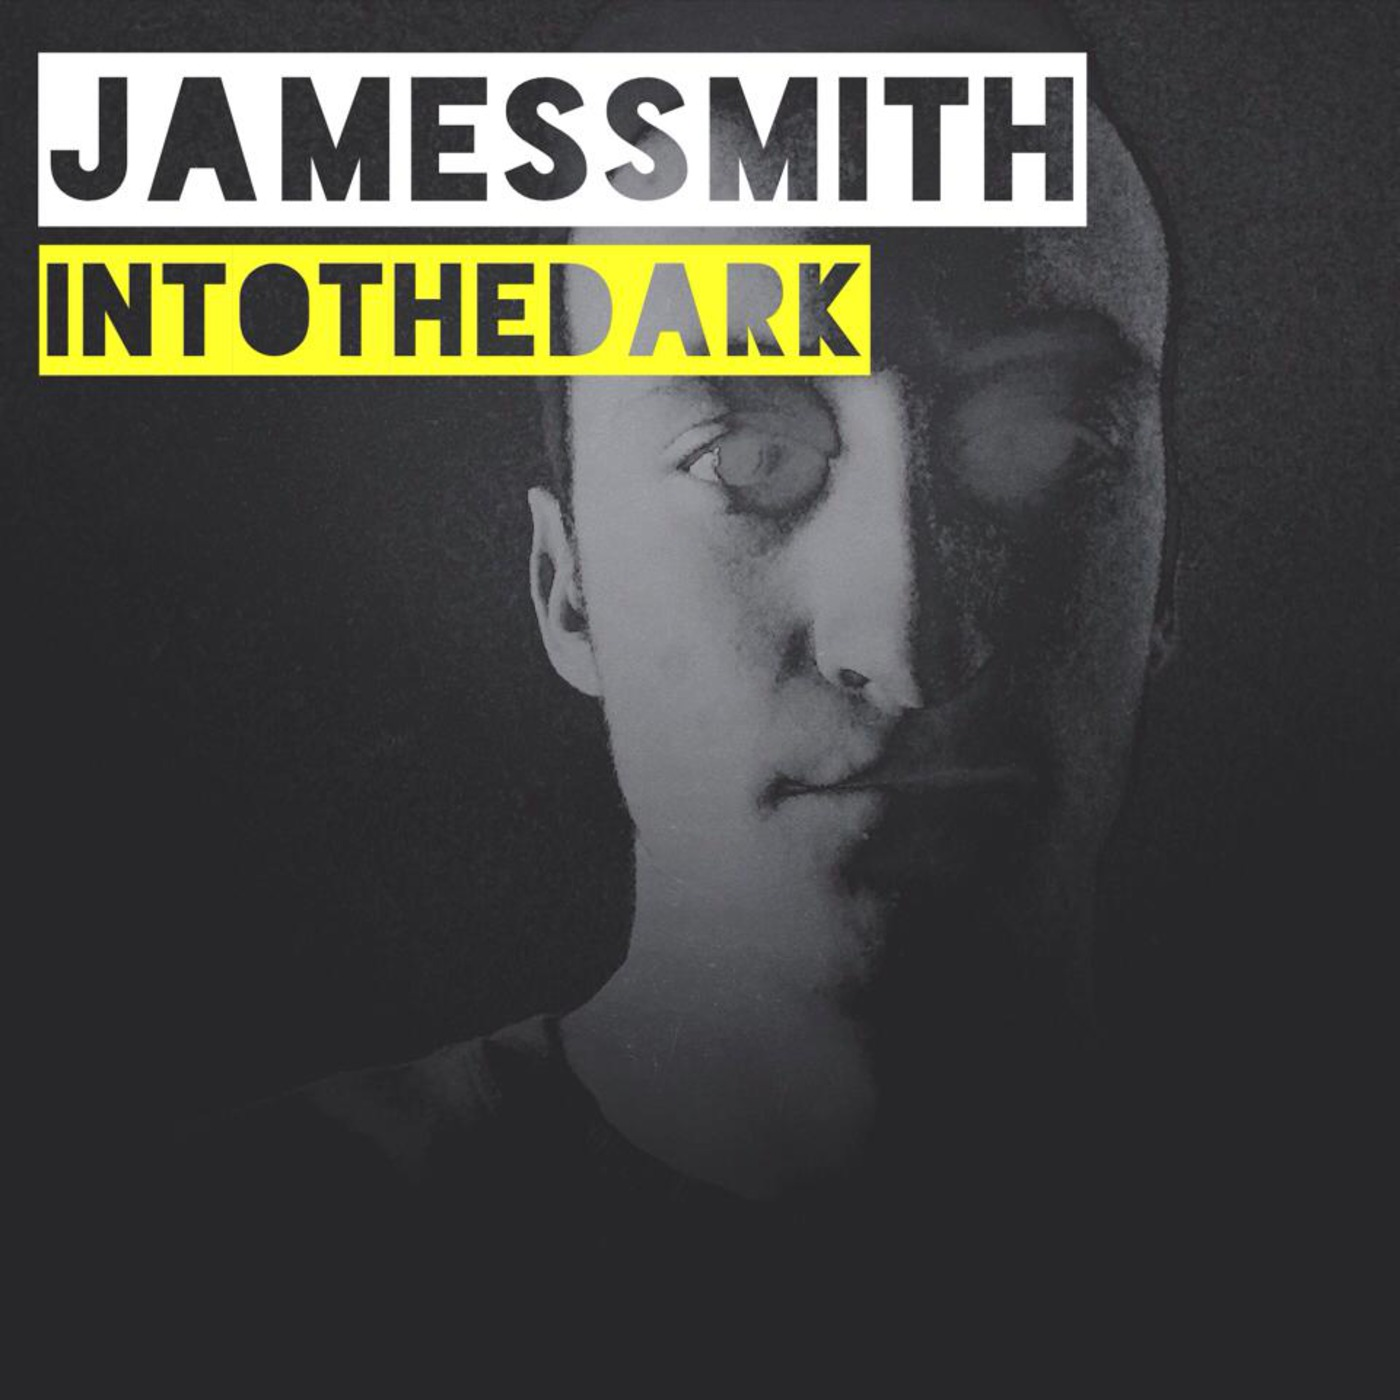 James Smith Into The Dark